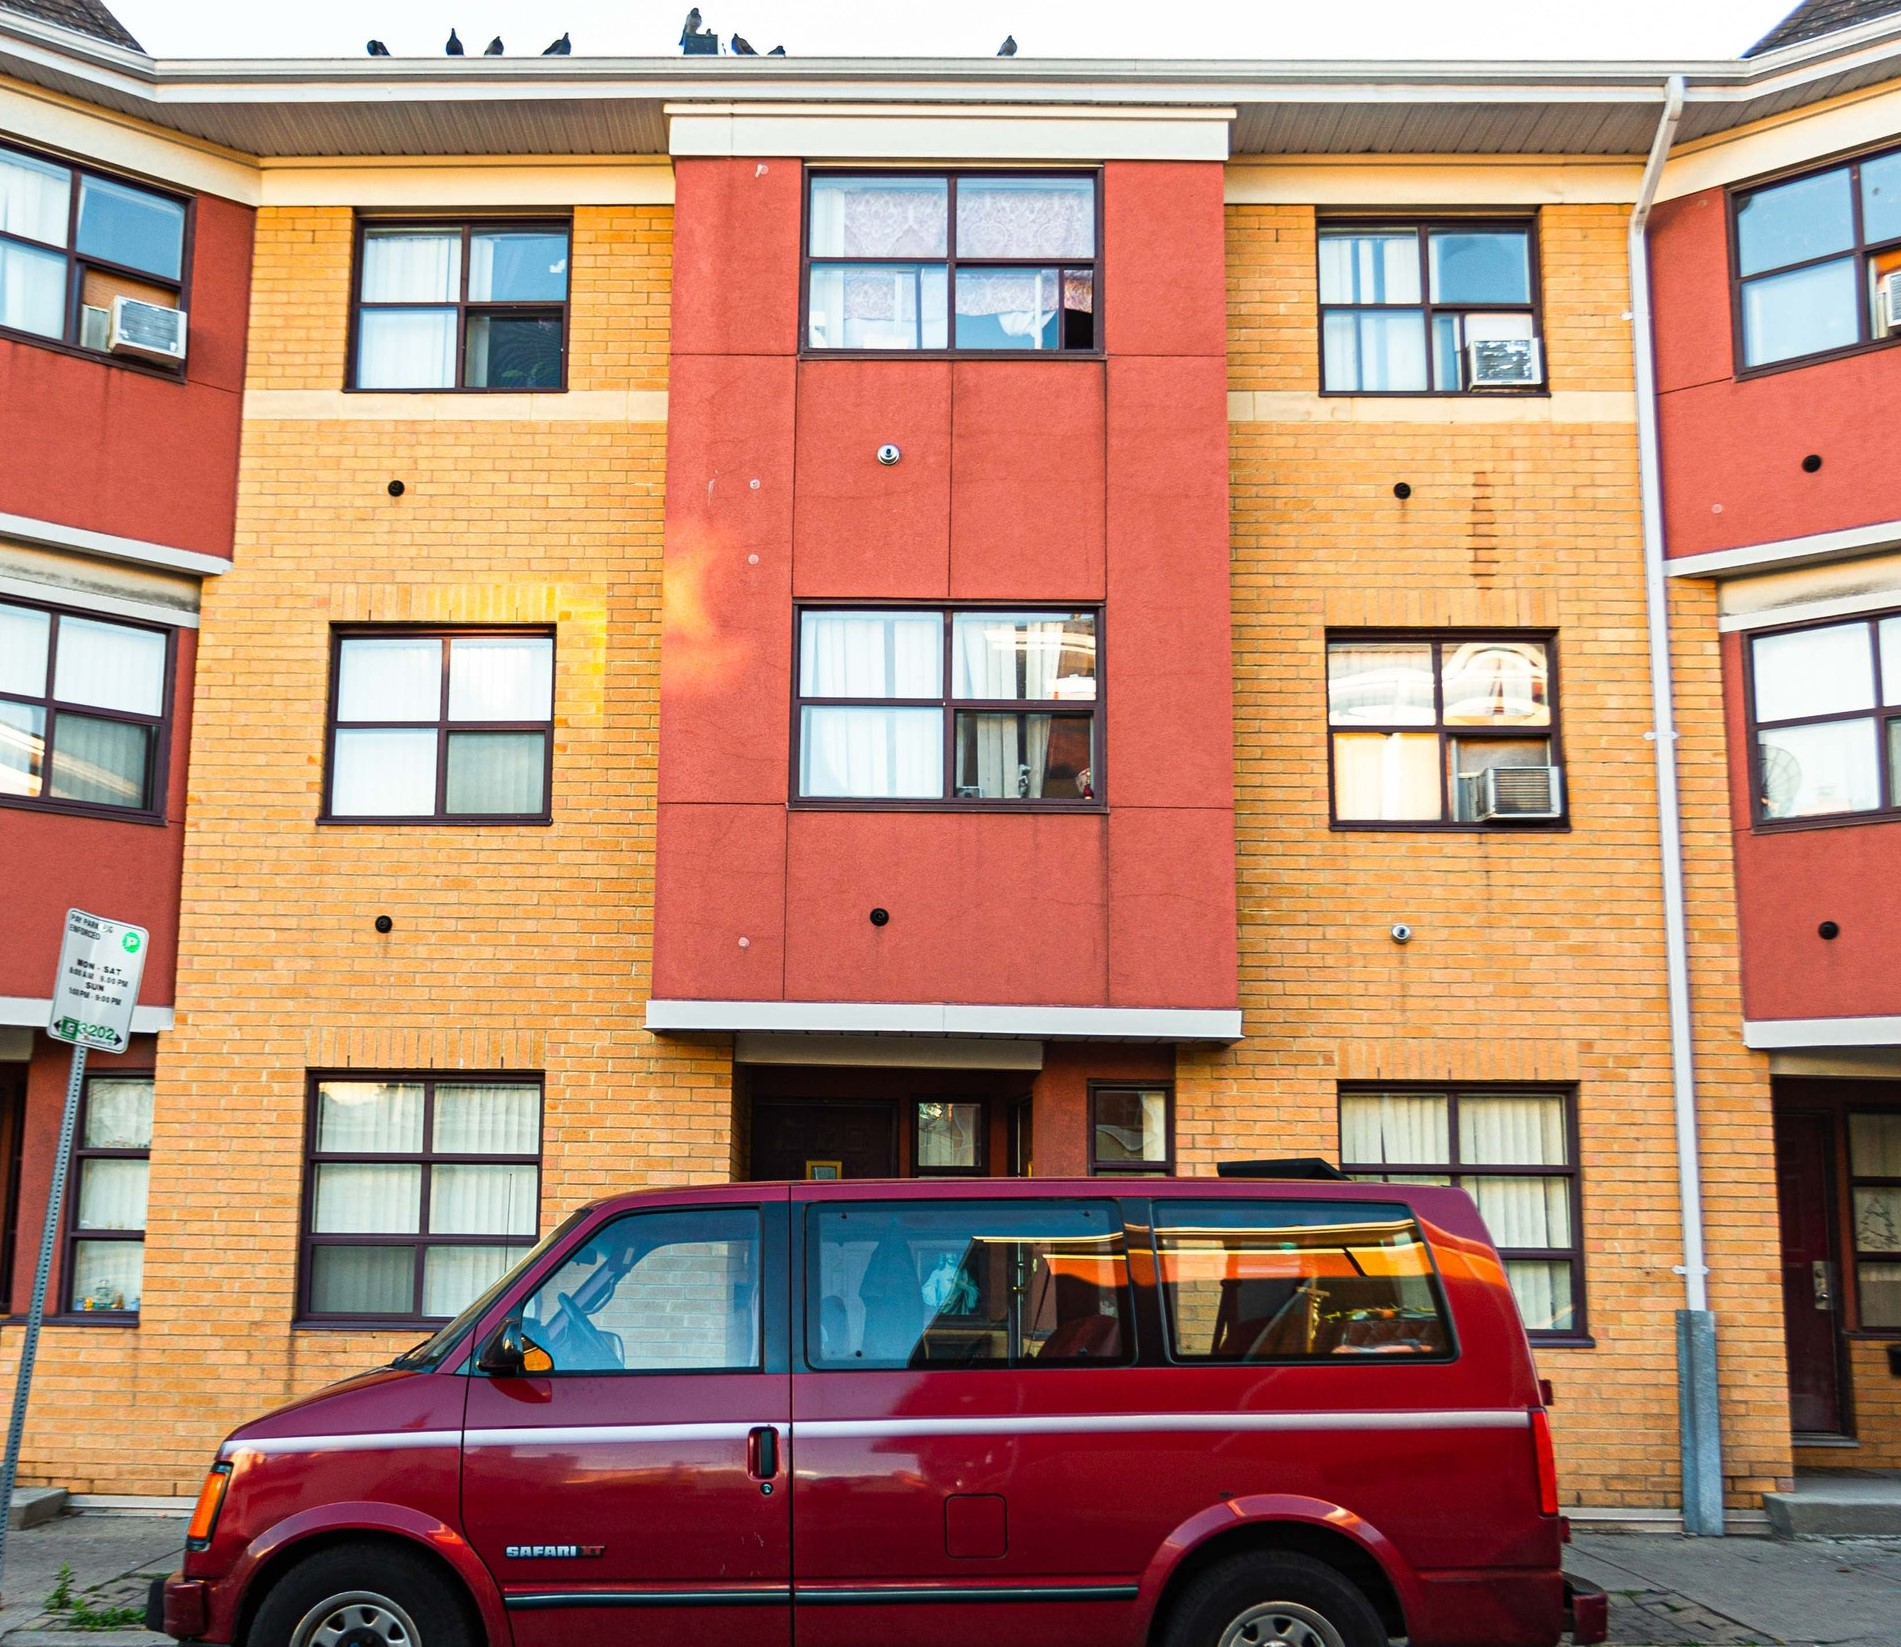 Red van parked outside of section 8 housing